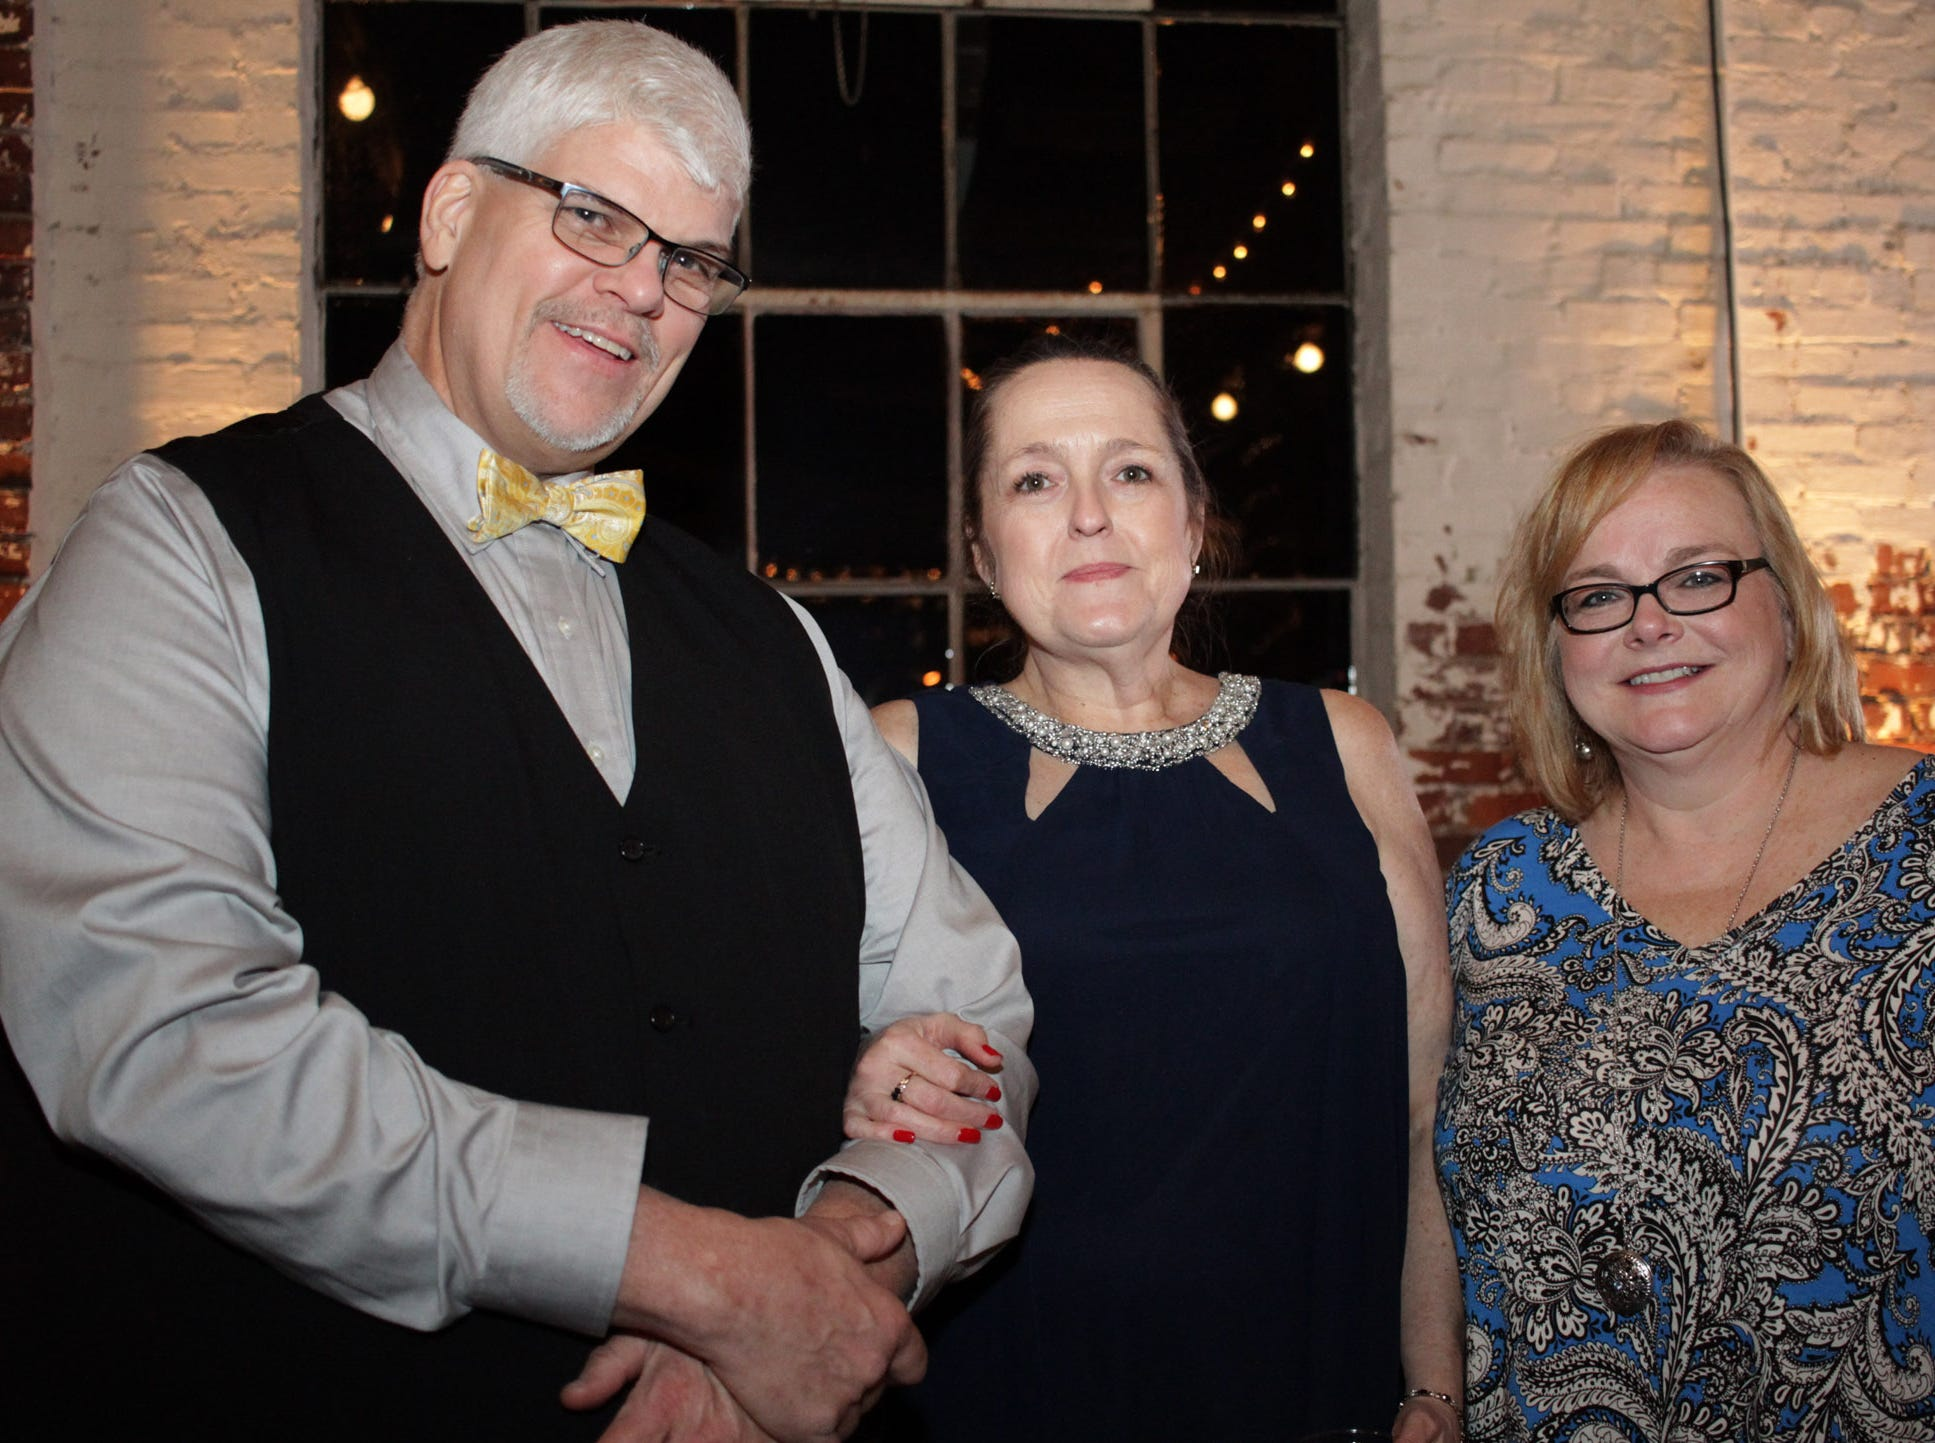 Paul and Peggy Sanders with Zena Parks at the Green and Gold Gala benefitting Gallatin HIgh School on March 9. 2019.